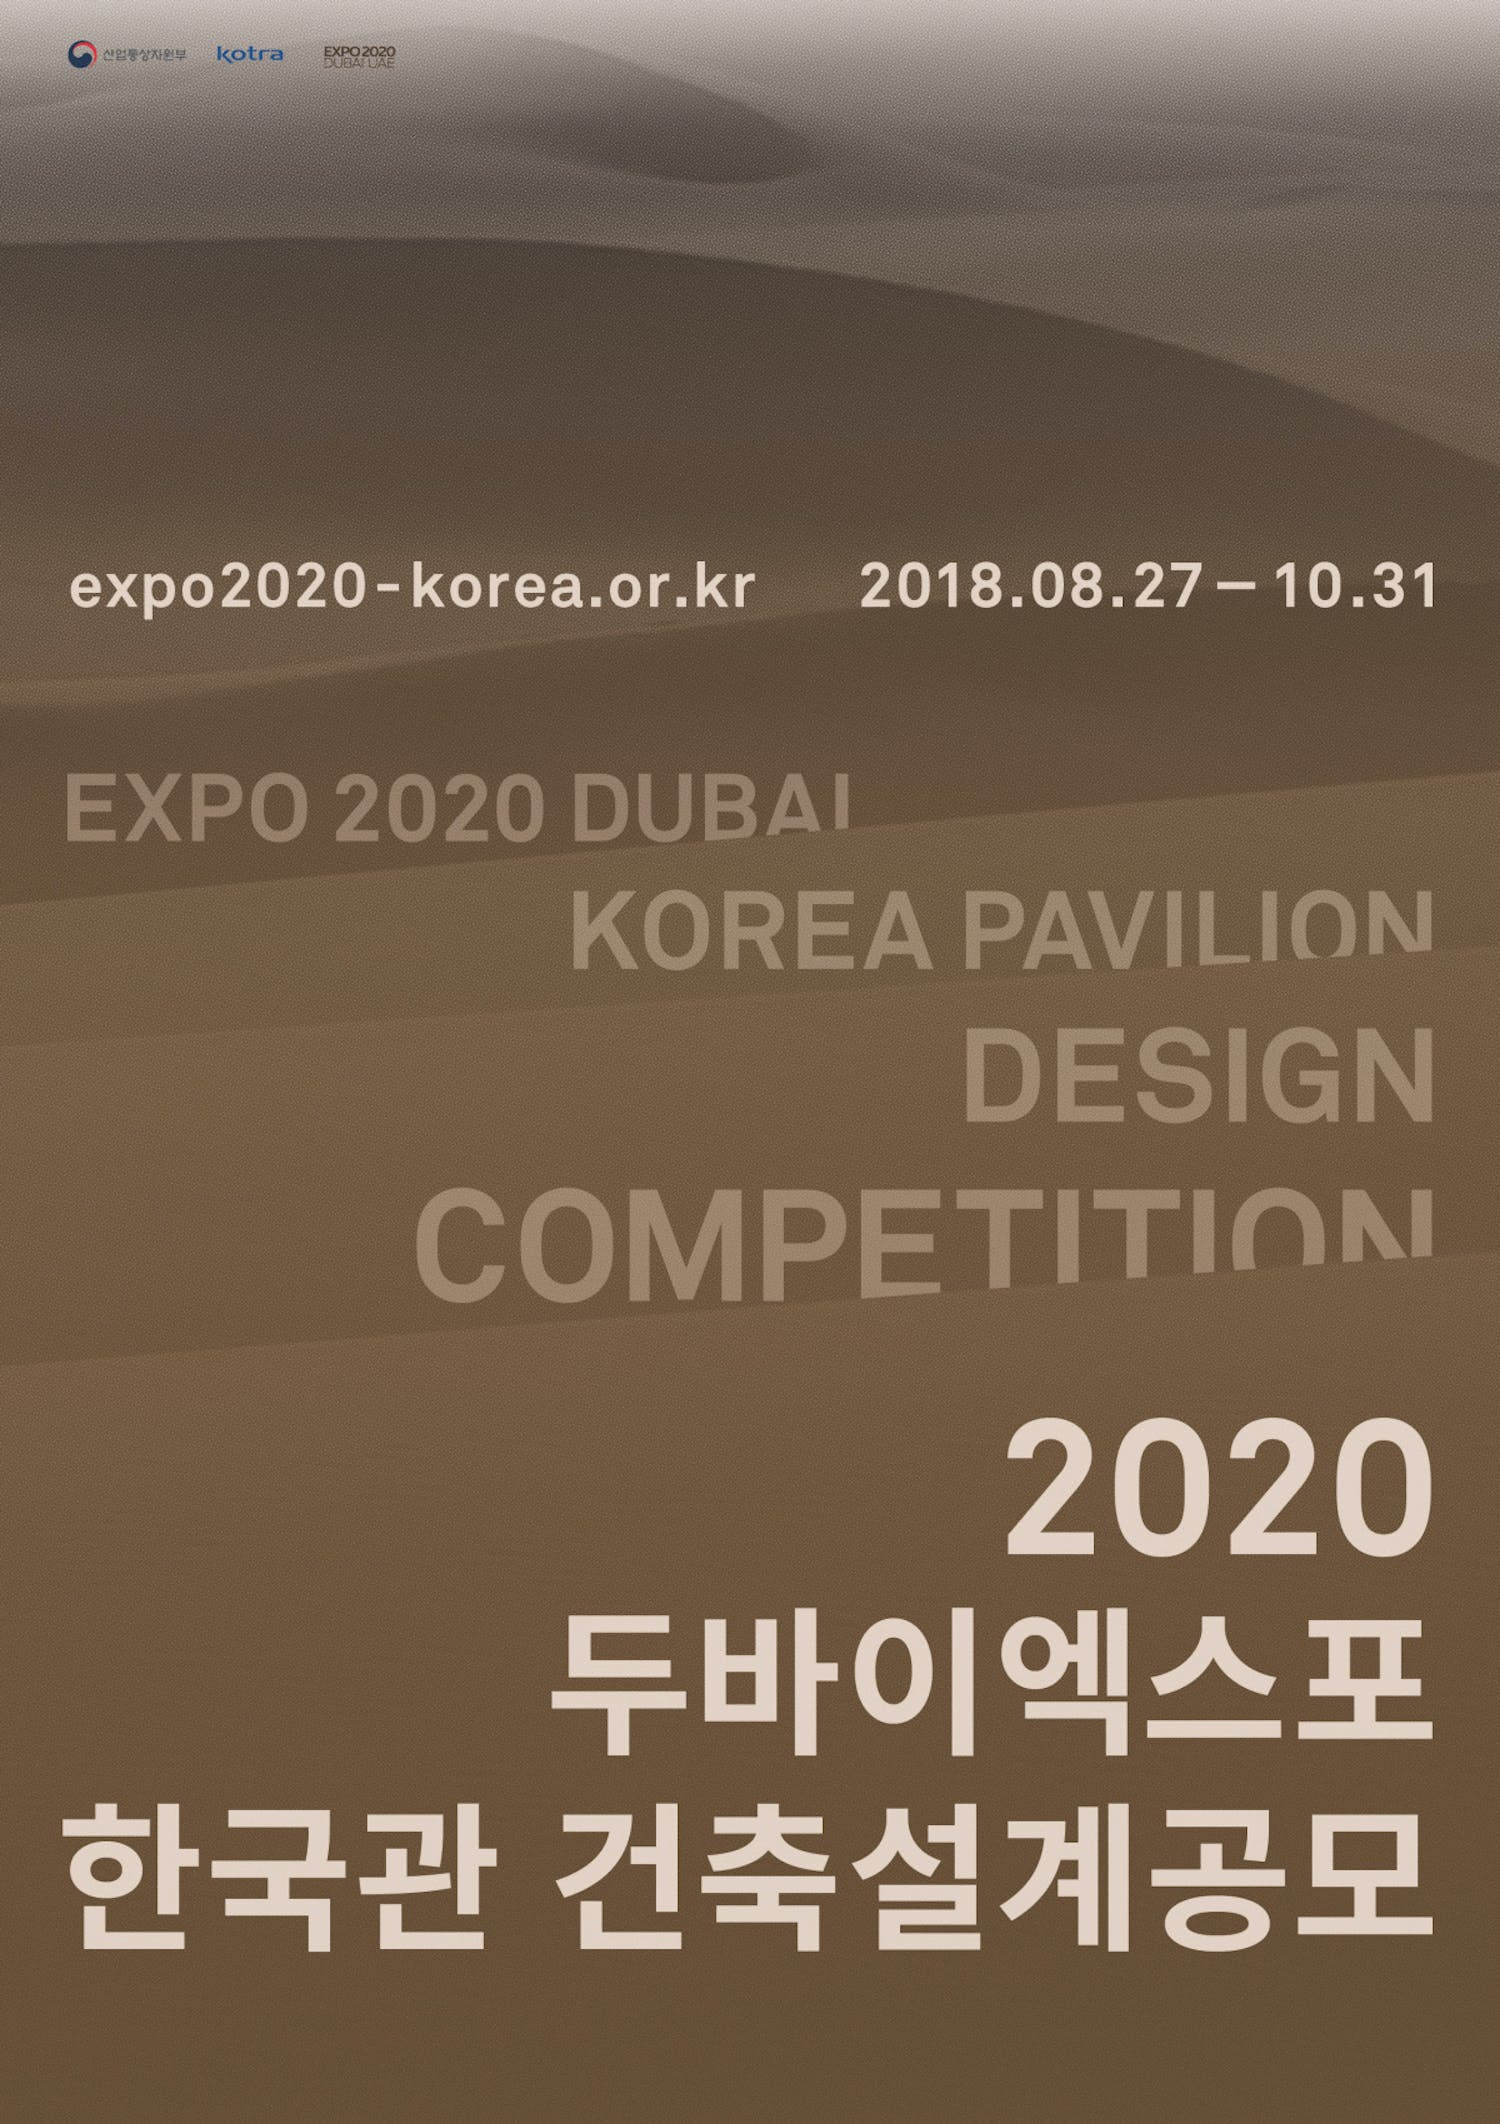 Architectural Design Competition for the Korea Pavilion at Expo 2020